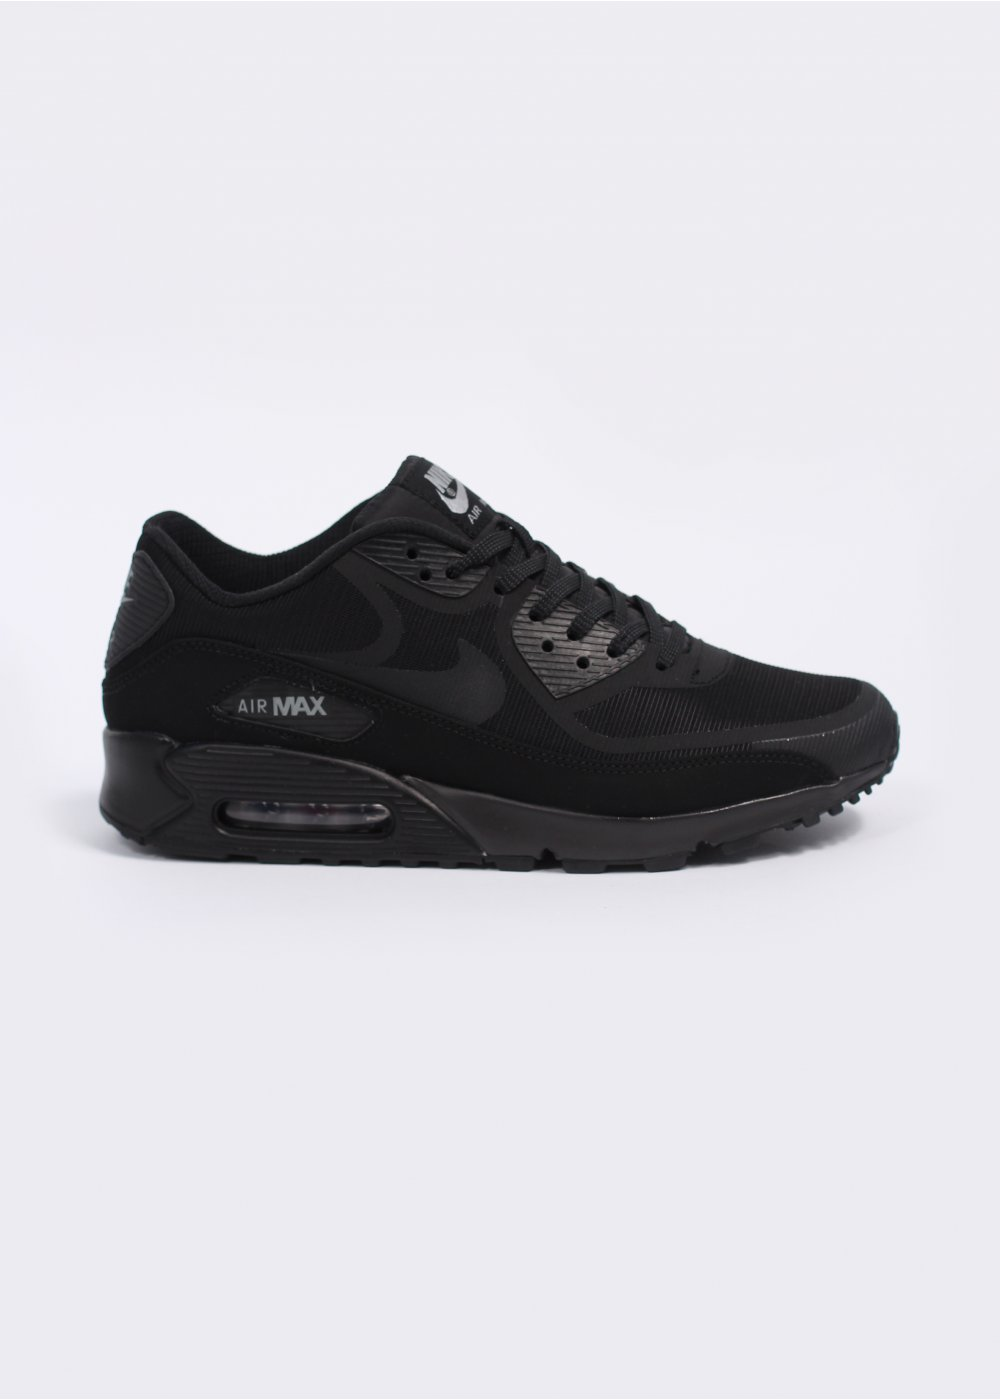 d210cc29c4 Air Max 90 Comfort Premium Tape 'Reflective Pack' Trainers